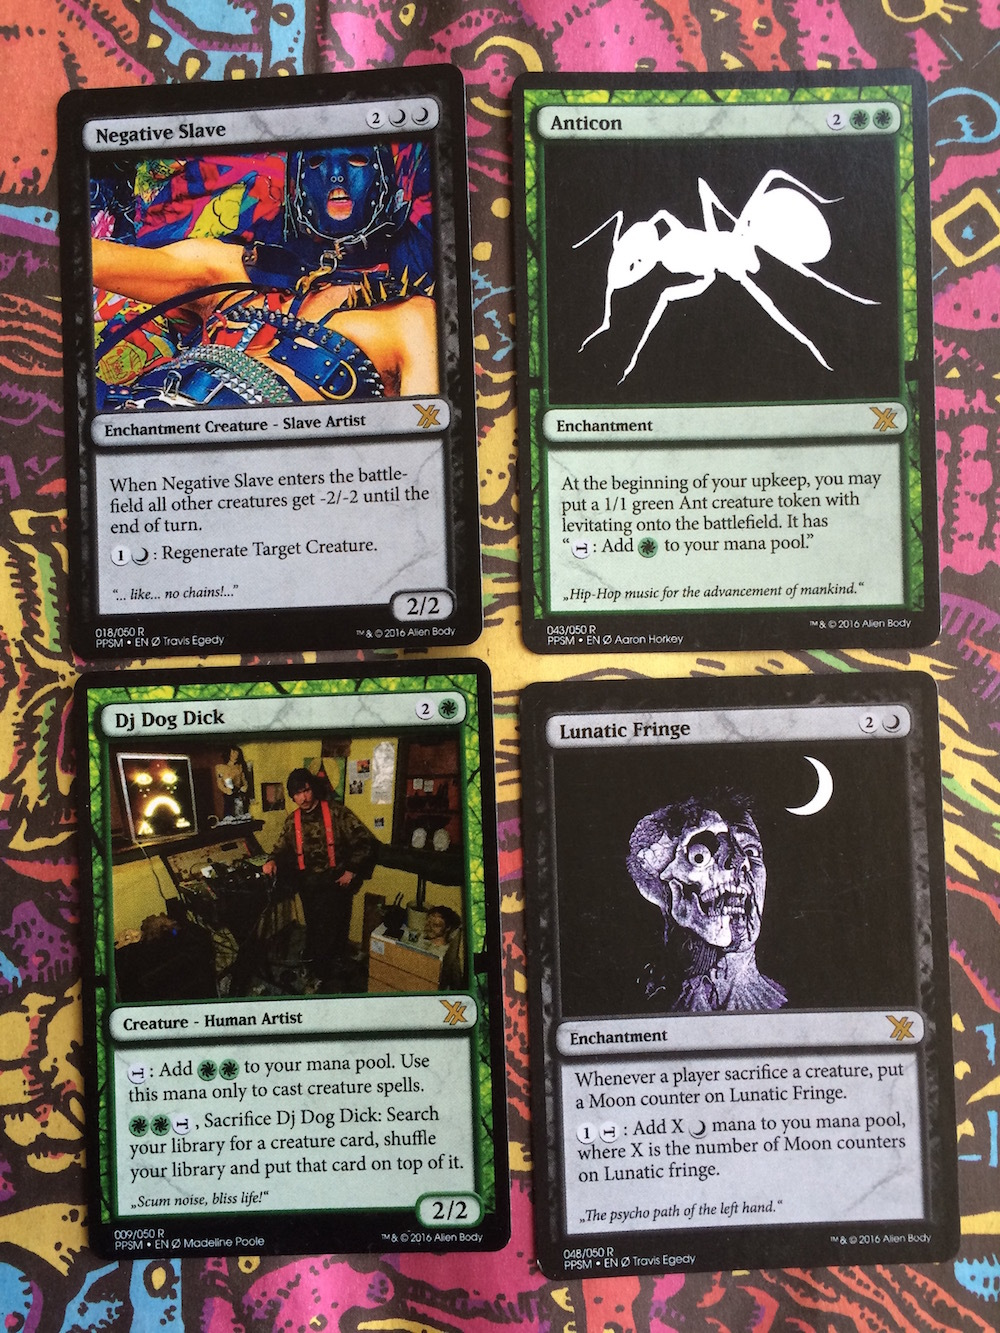 Would You Be Interested In Making A New Deck With Different Cards? I Would  Really